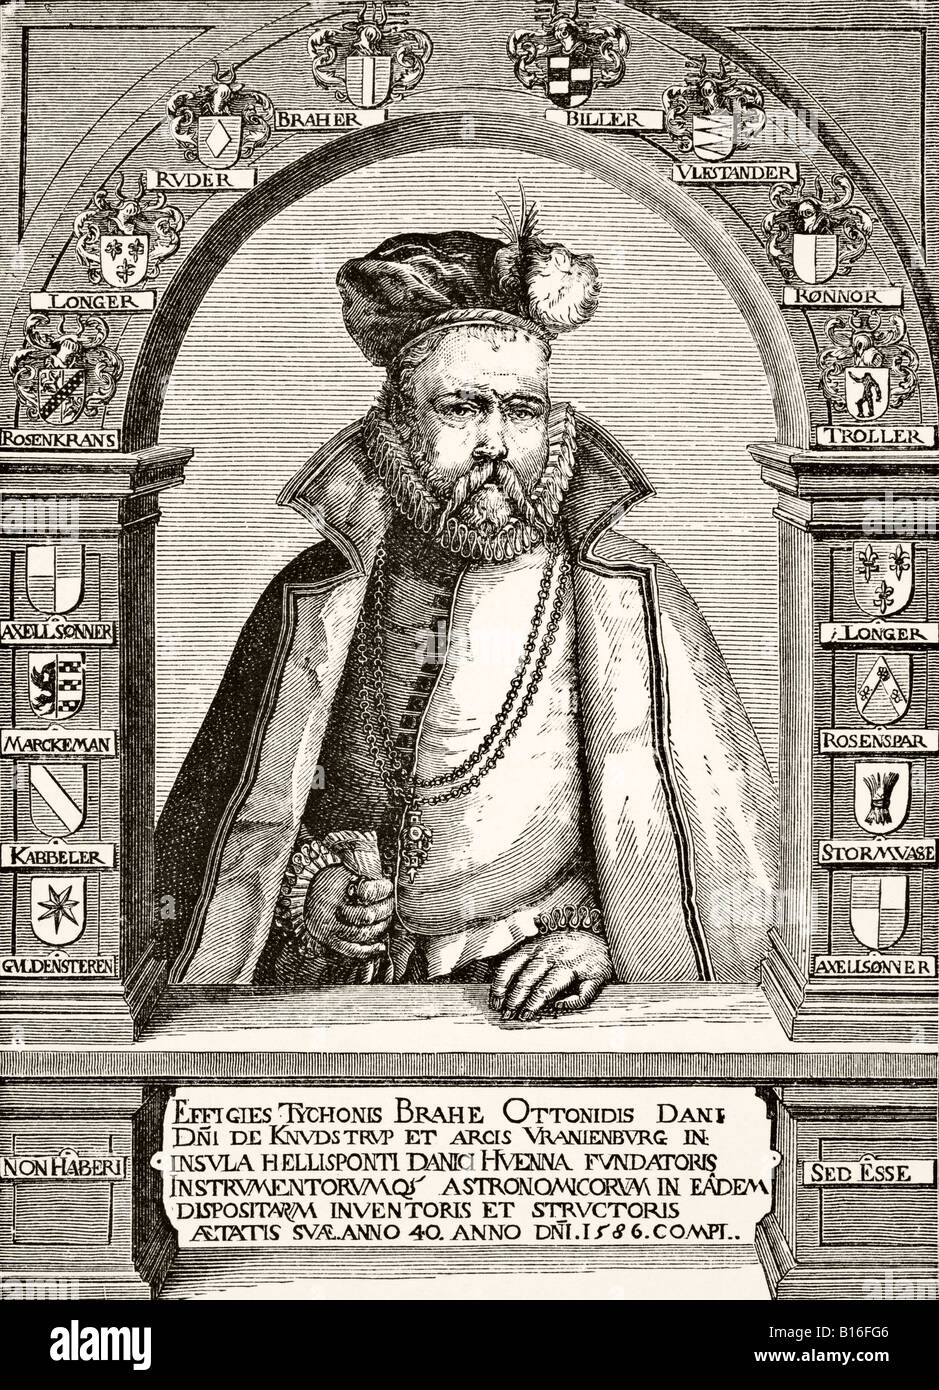 Tycho Brahe 1546 to 1601 Danish astronomer and alchemist after an engraving by Gheyn late 1600s - Stock Image